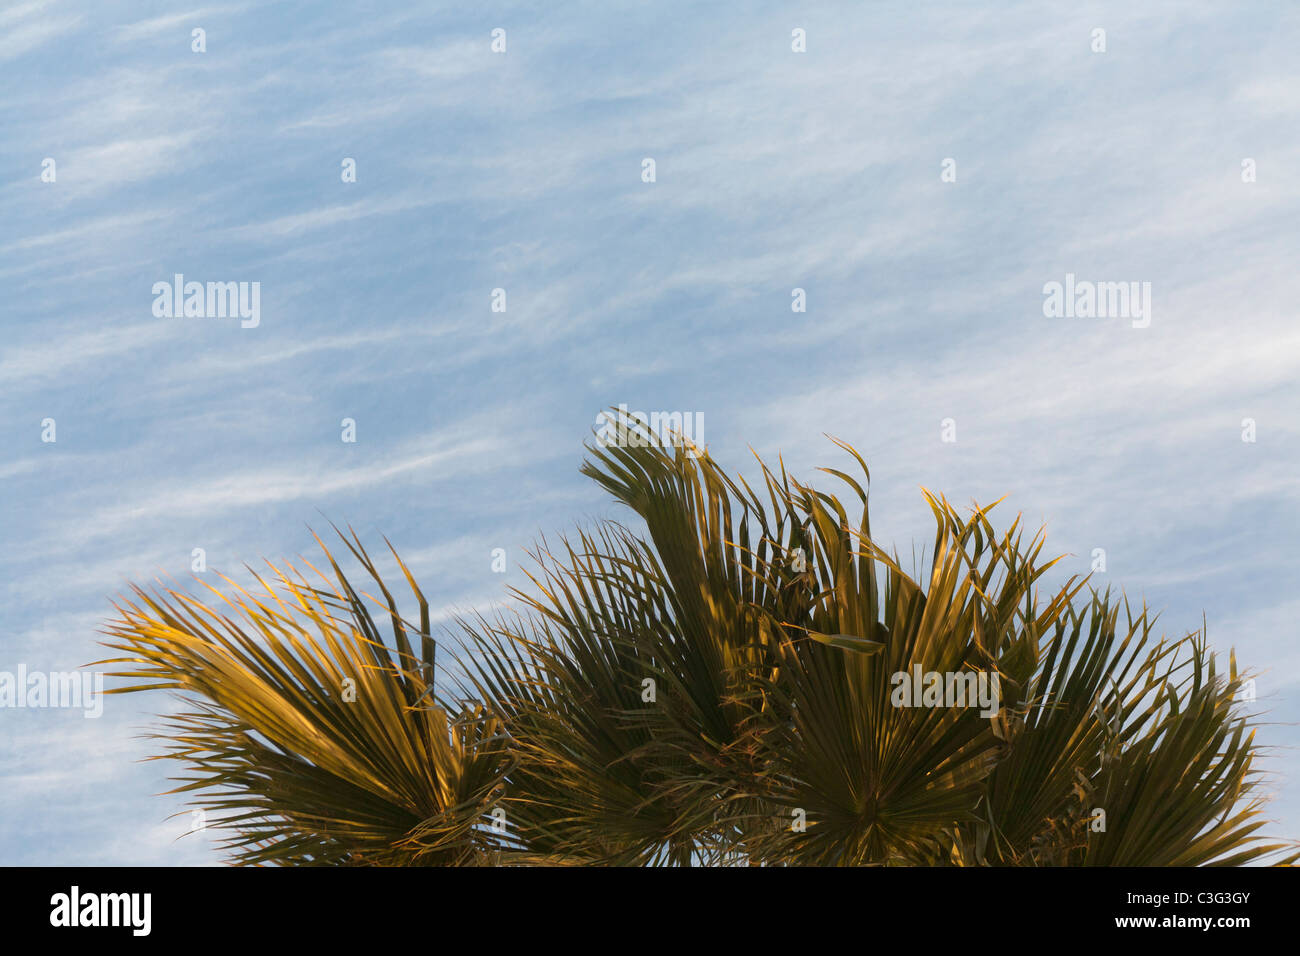 Top of a date palm centred against a lightly cloud mottled blue sky, Egypt, Africa - Stock Image